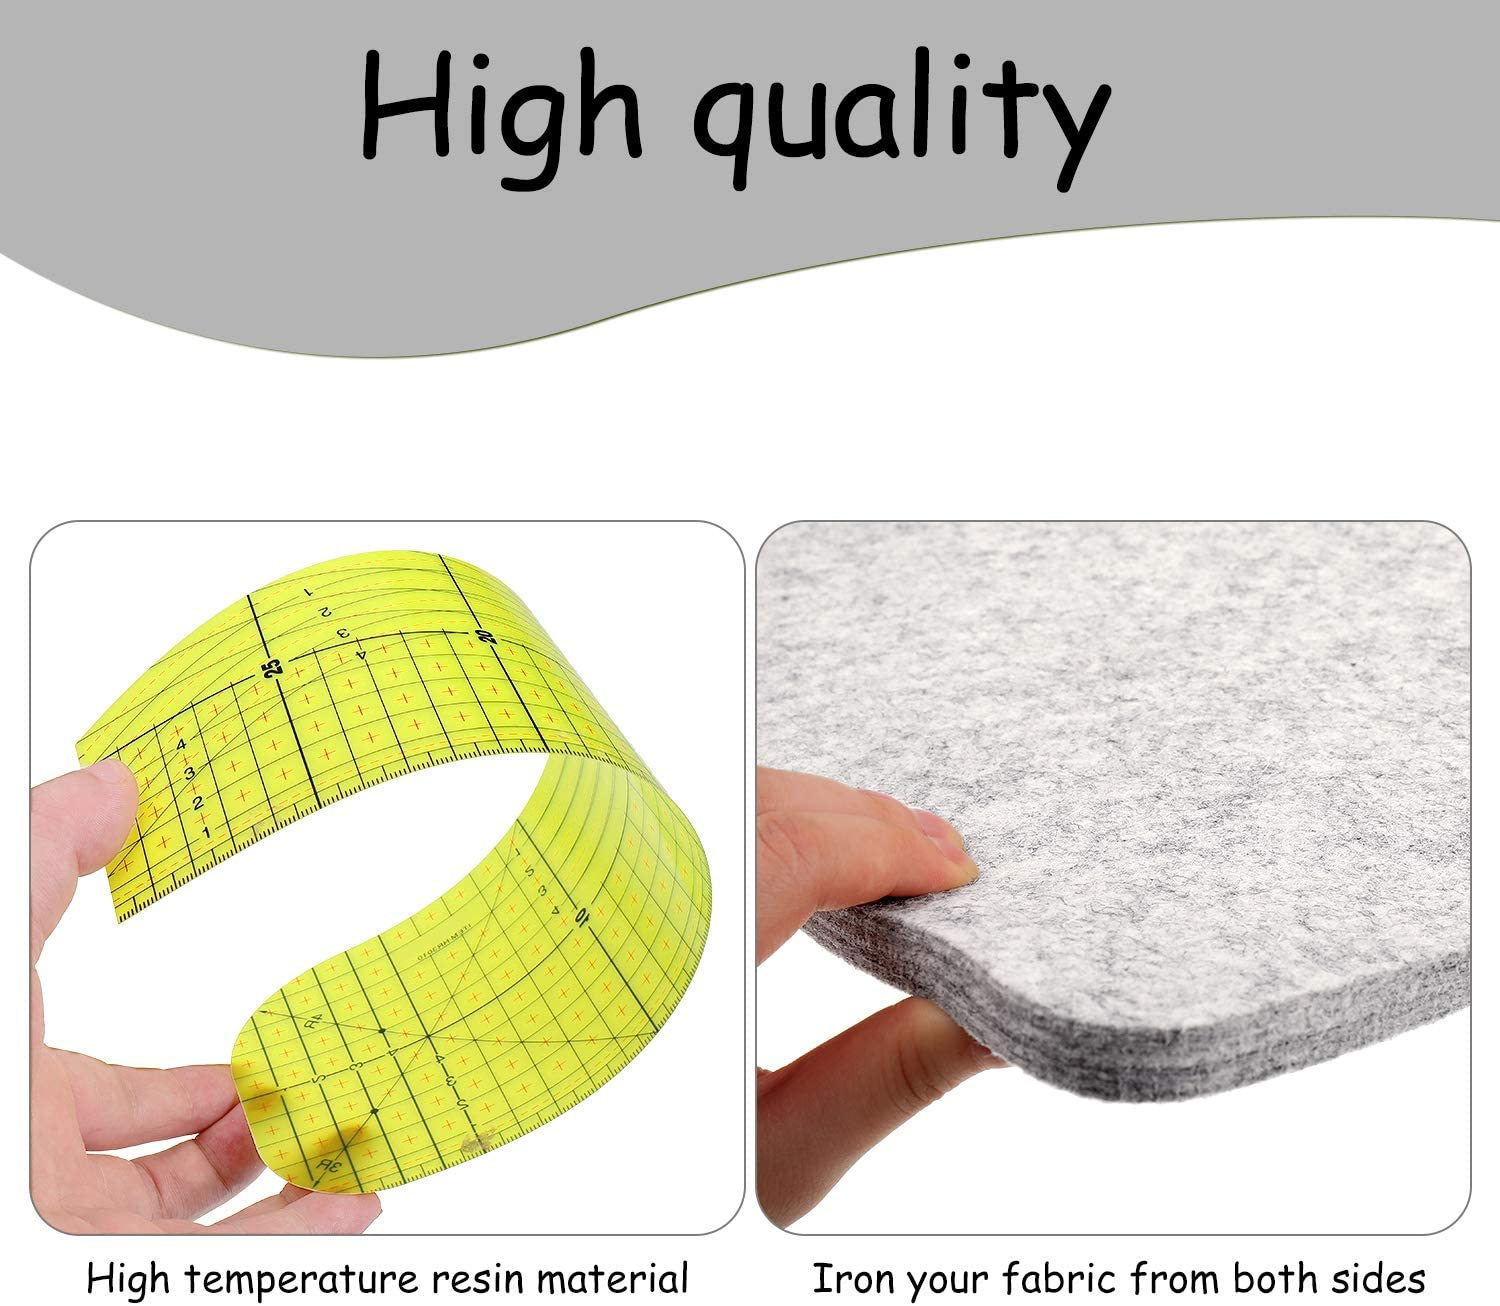 2 Pieces Hot Ruler Hot Hemmer Ruler with Wool Pressing Mat 12 x 12 Inch Heat Resistant Ruler Sewing Tools for Electric Iron Home lroning Work 2 Different Styles